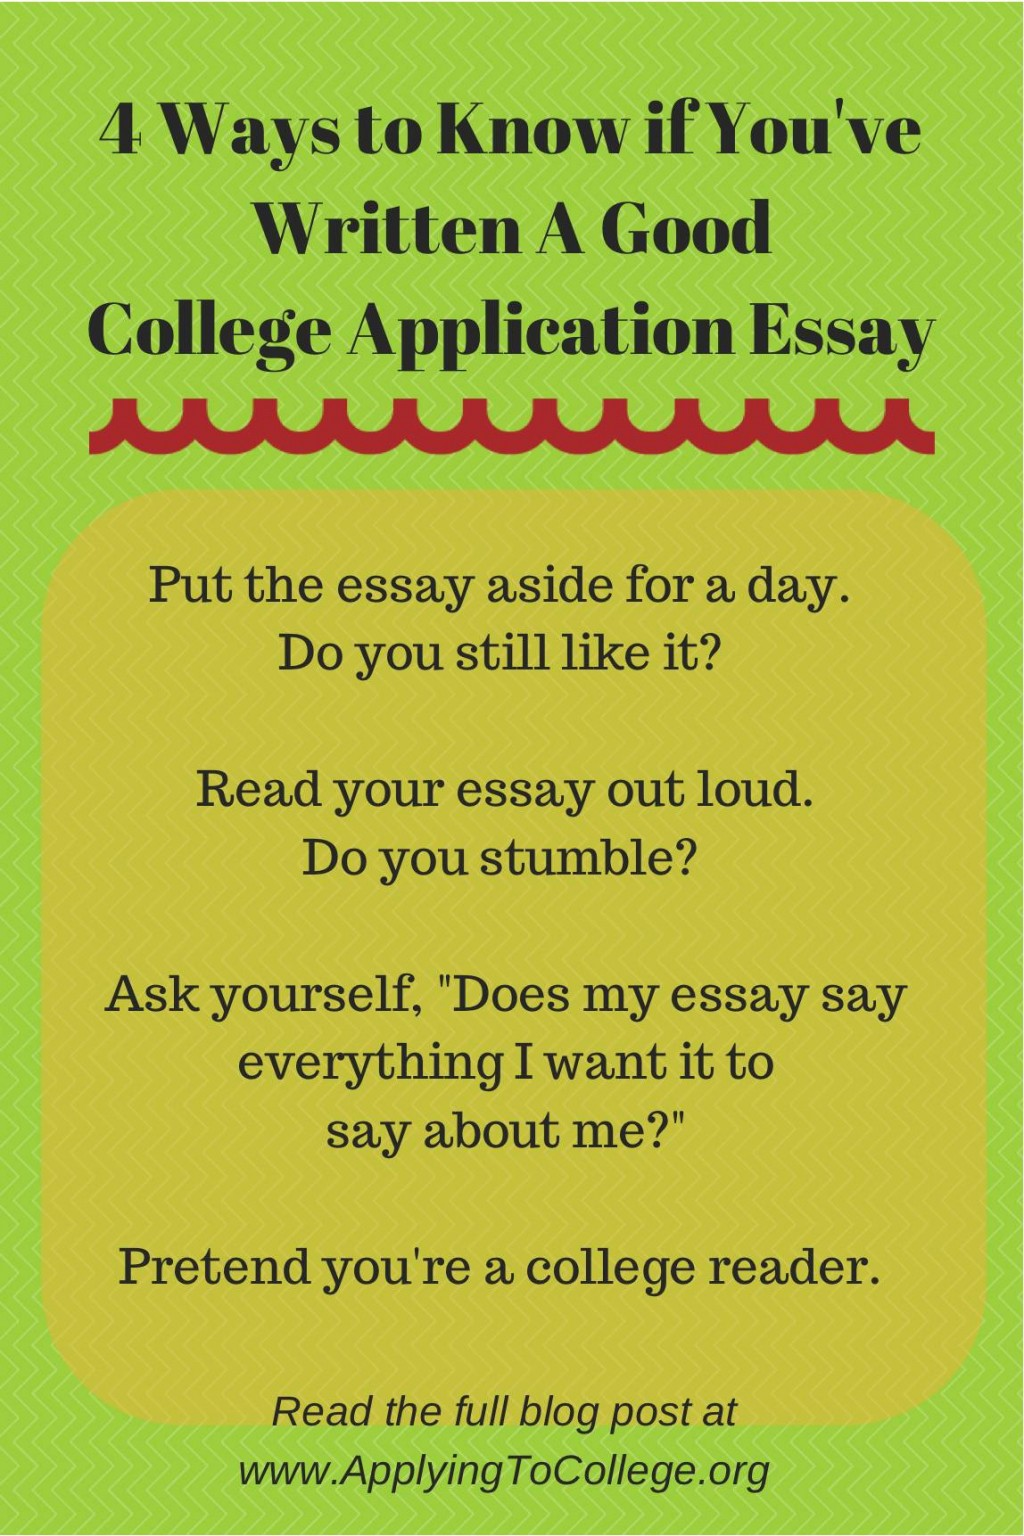 003 What Should I Write My College Essay About On Of Ideas To Sensational Depression Quiz Large